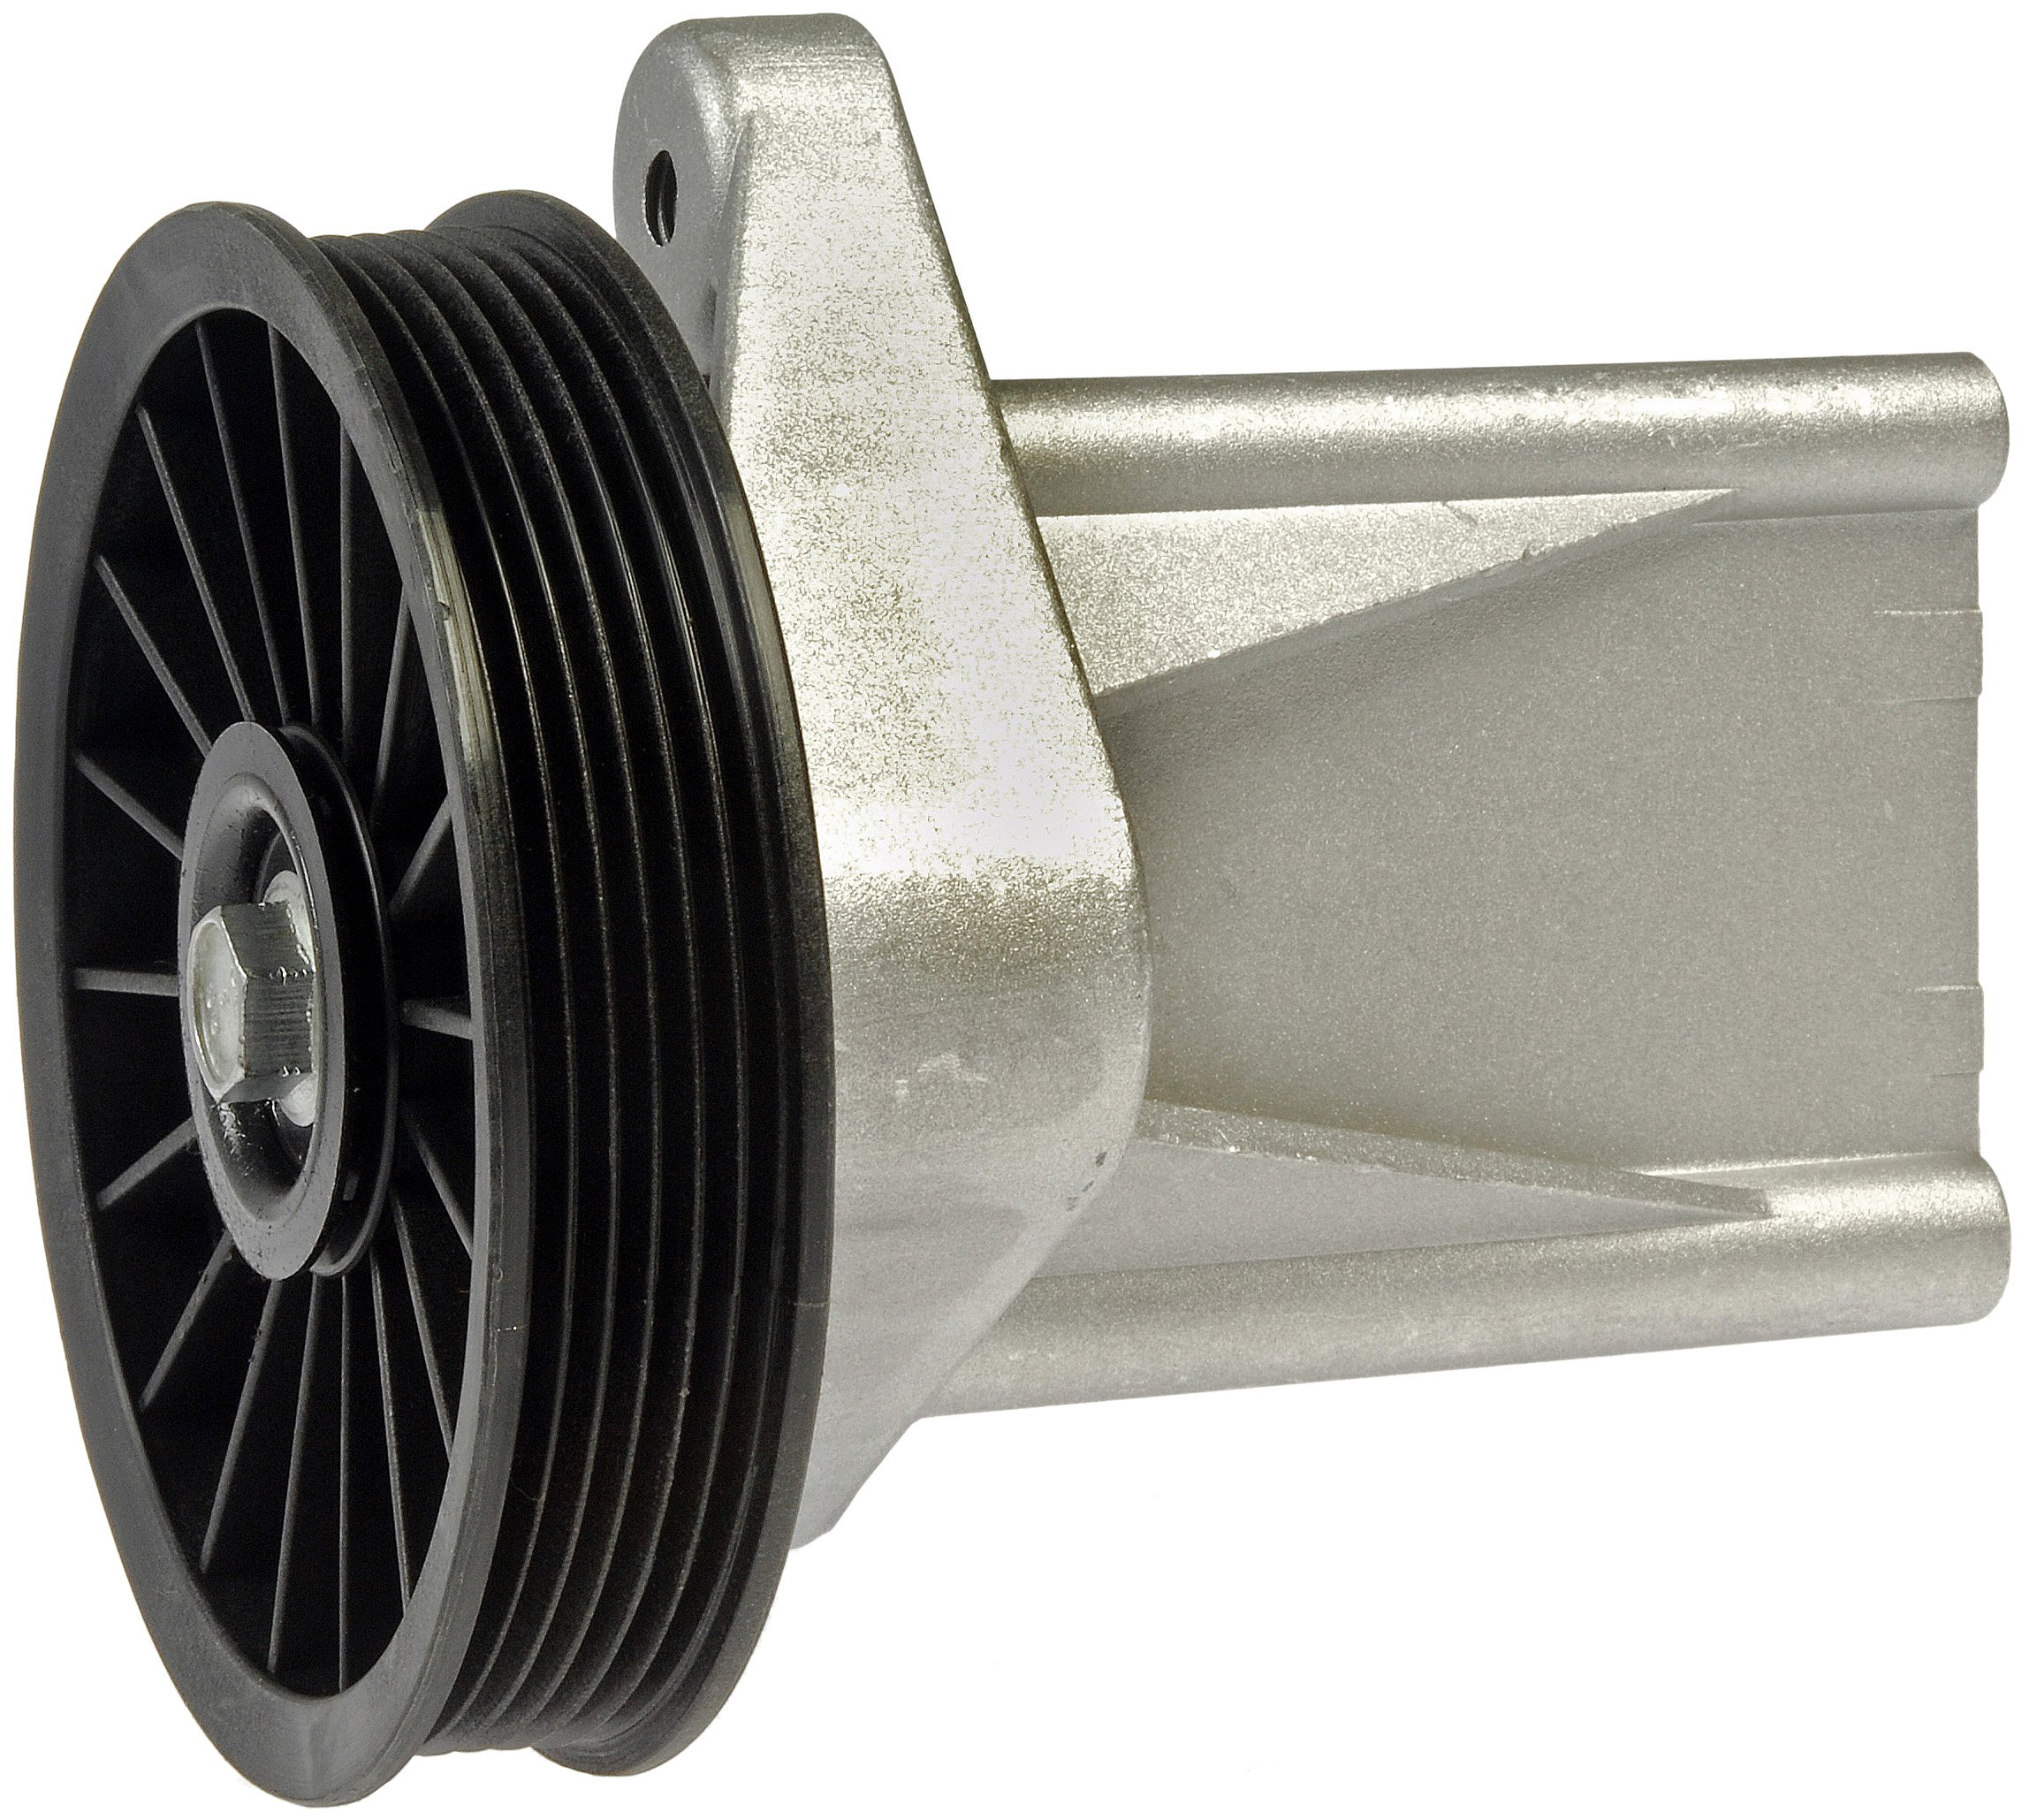 A//C Compressor Bypass Pulley-Air Conditioning Bypass Pulley Boxed Dorman 34153